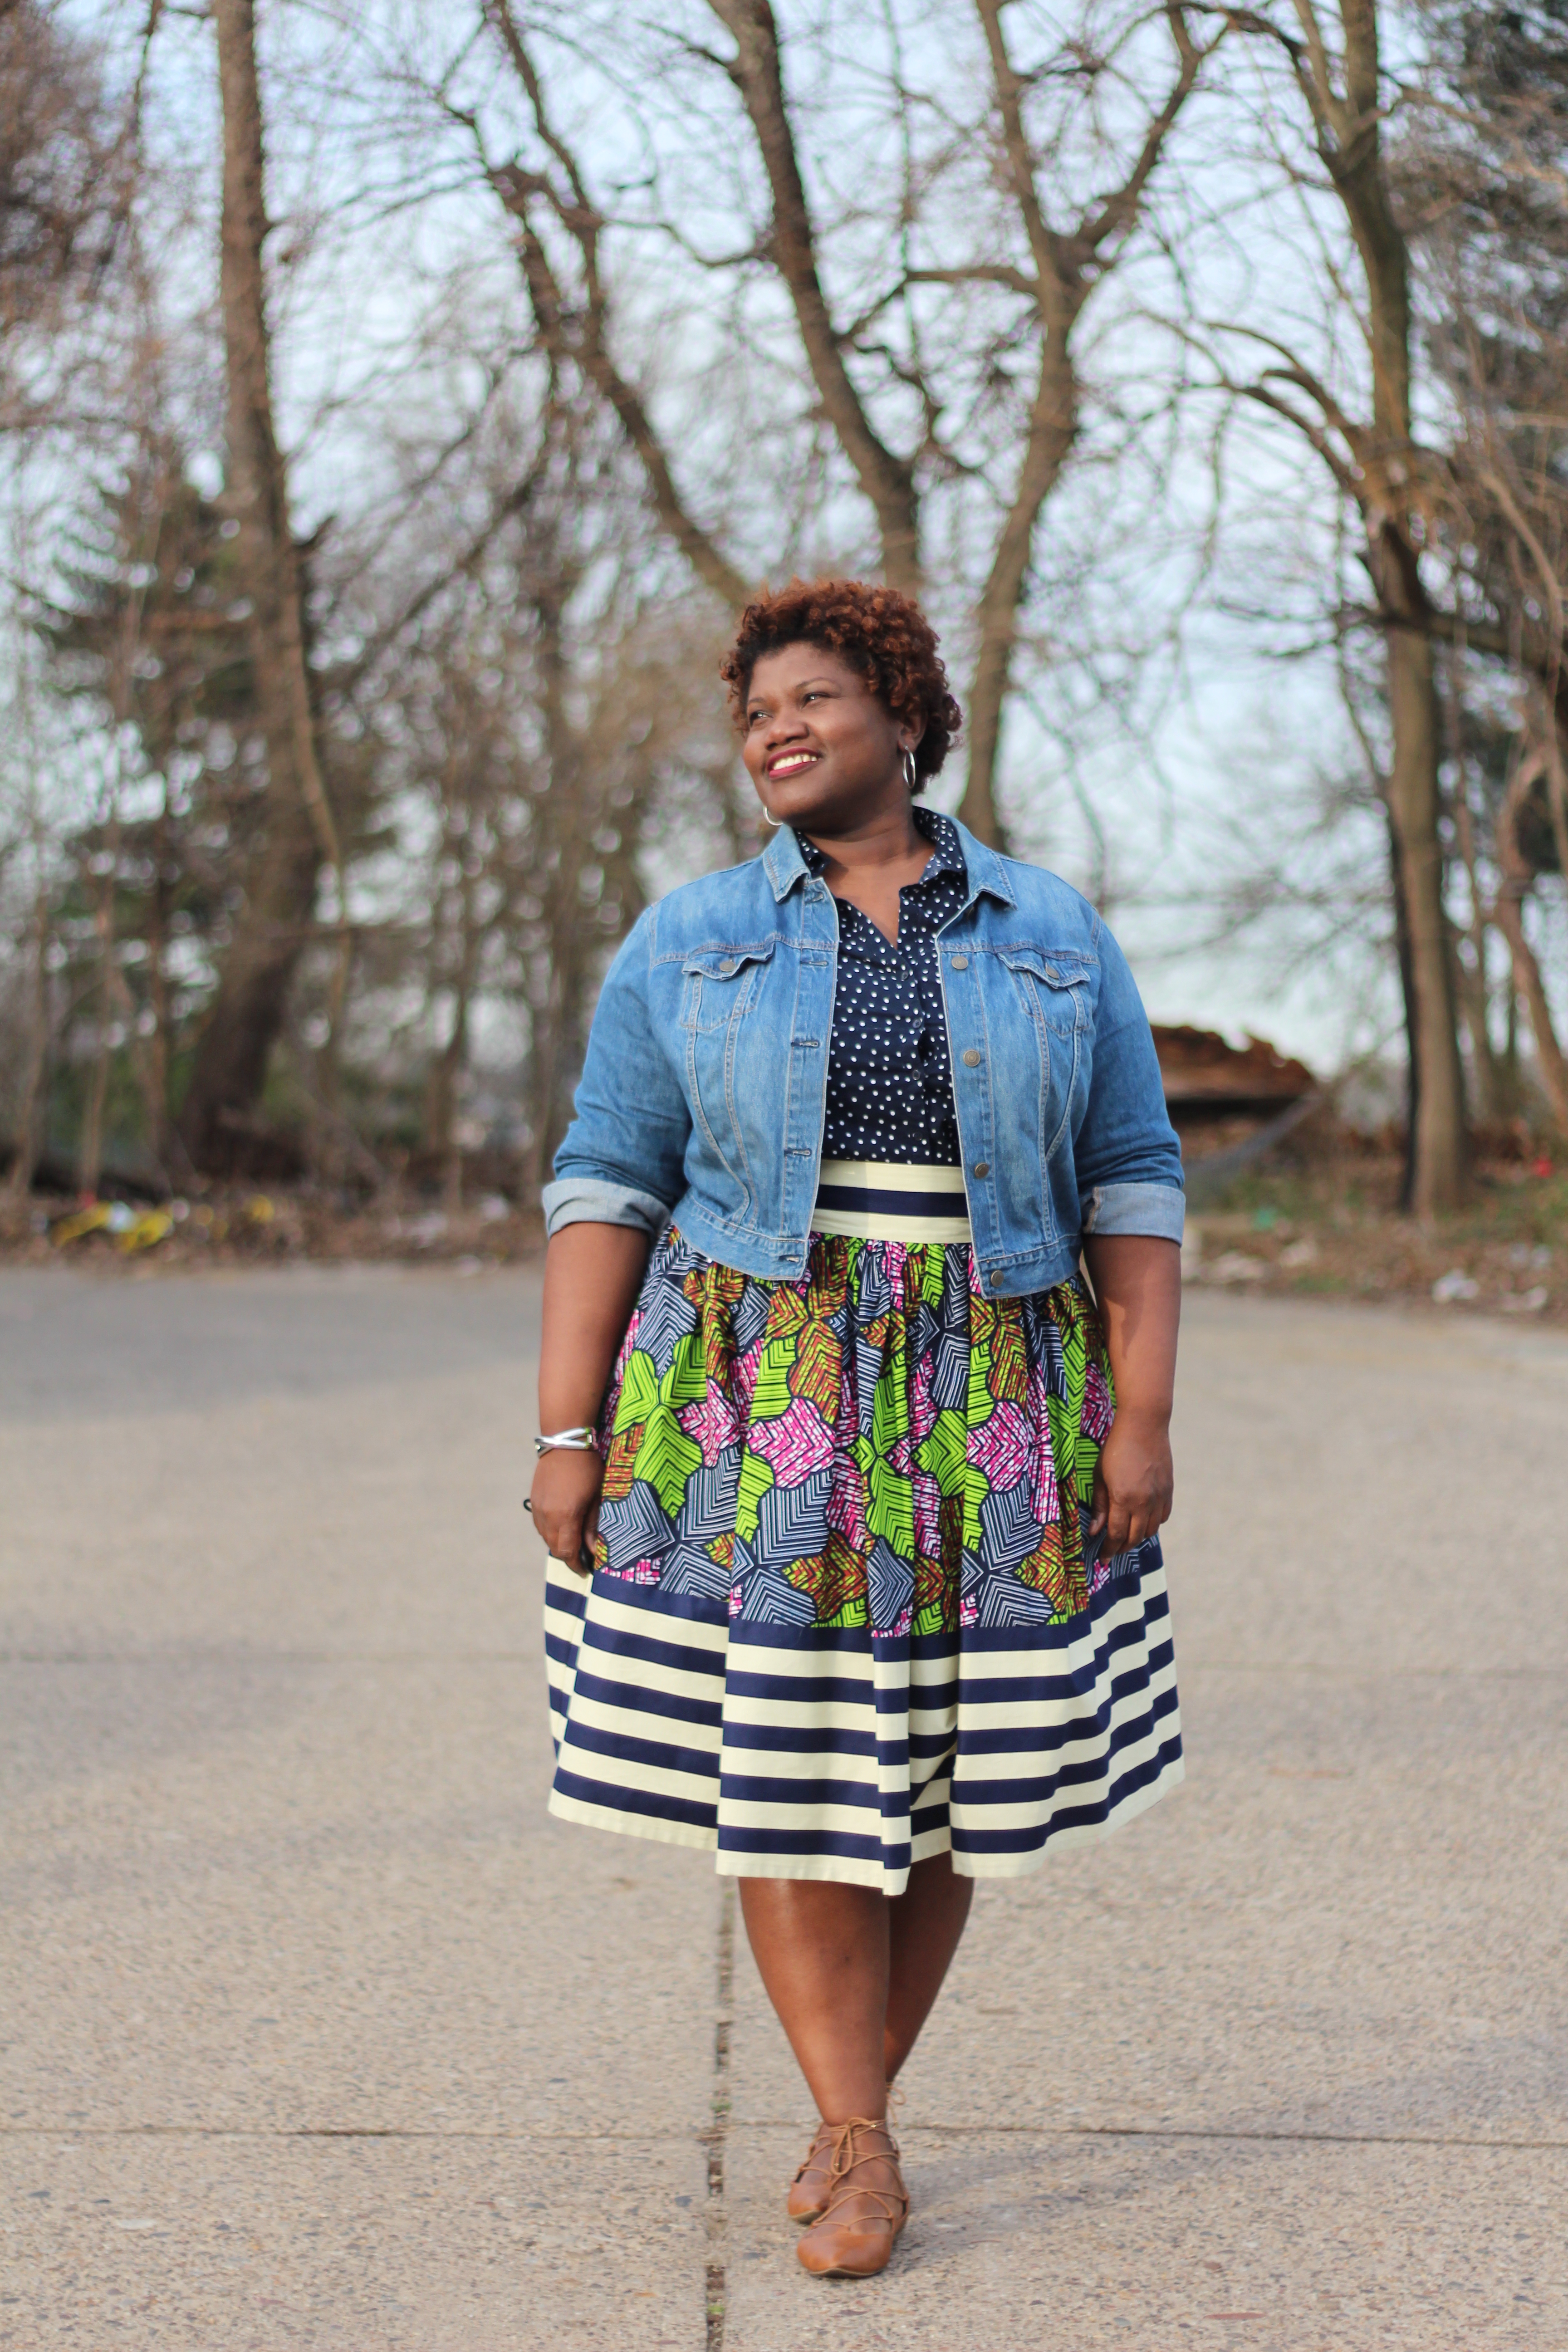 plus size fashion, plus size skirts, plus size midi skirts, african print skirts, mixed print, plus size fashion blog, plus size fashion blogger, curvy blogs, curvy bloggers, lace up flats, nordstrom flats, spring fashion, spring trends, curvy women, curvy girls, nude flats, polka dots, plus size blogger, plus size fashion blogger